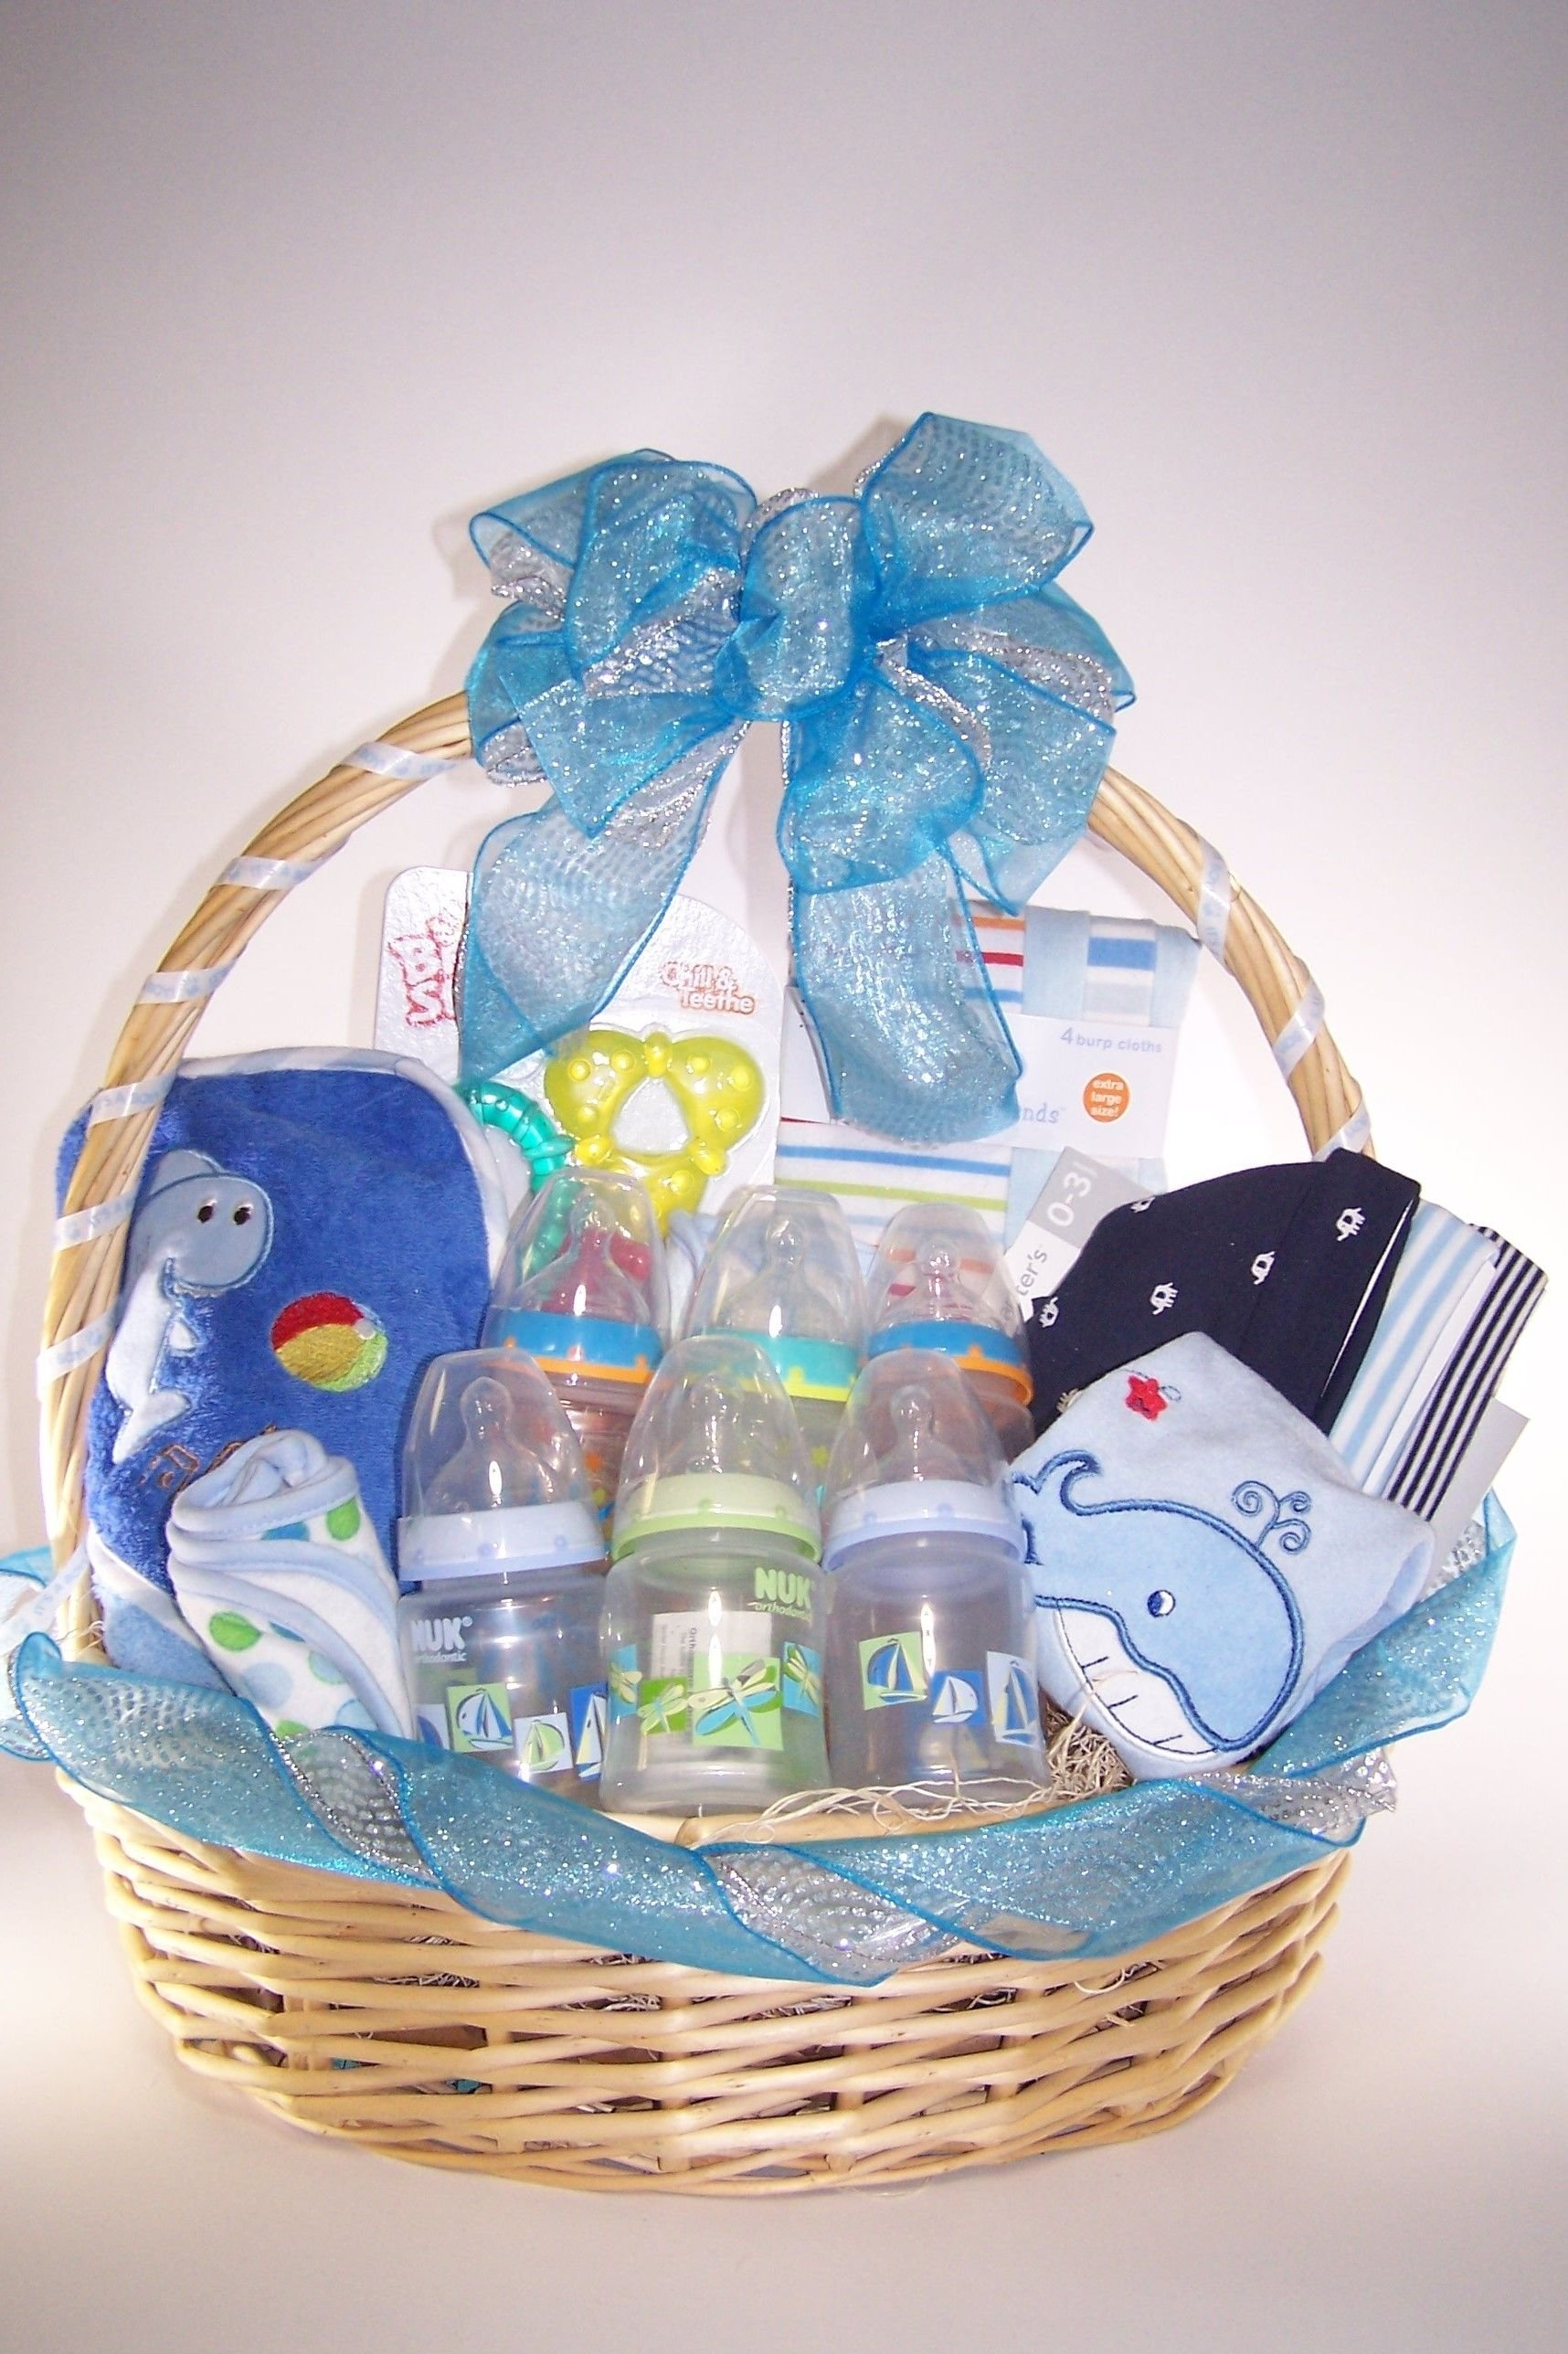 baby shower it's a boy! gift basket | gift baskets | pinterest